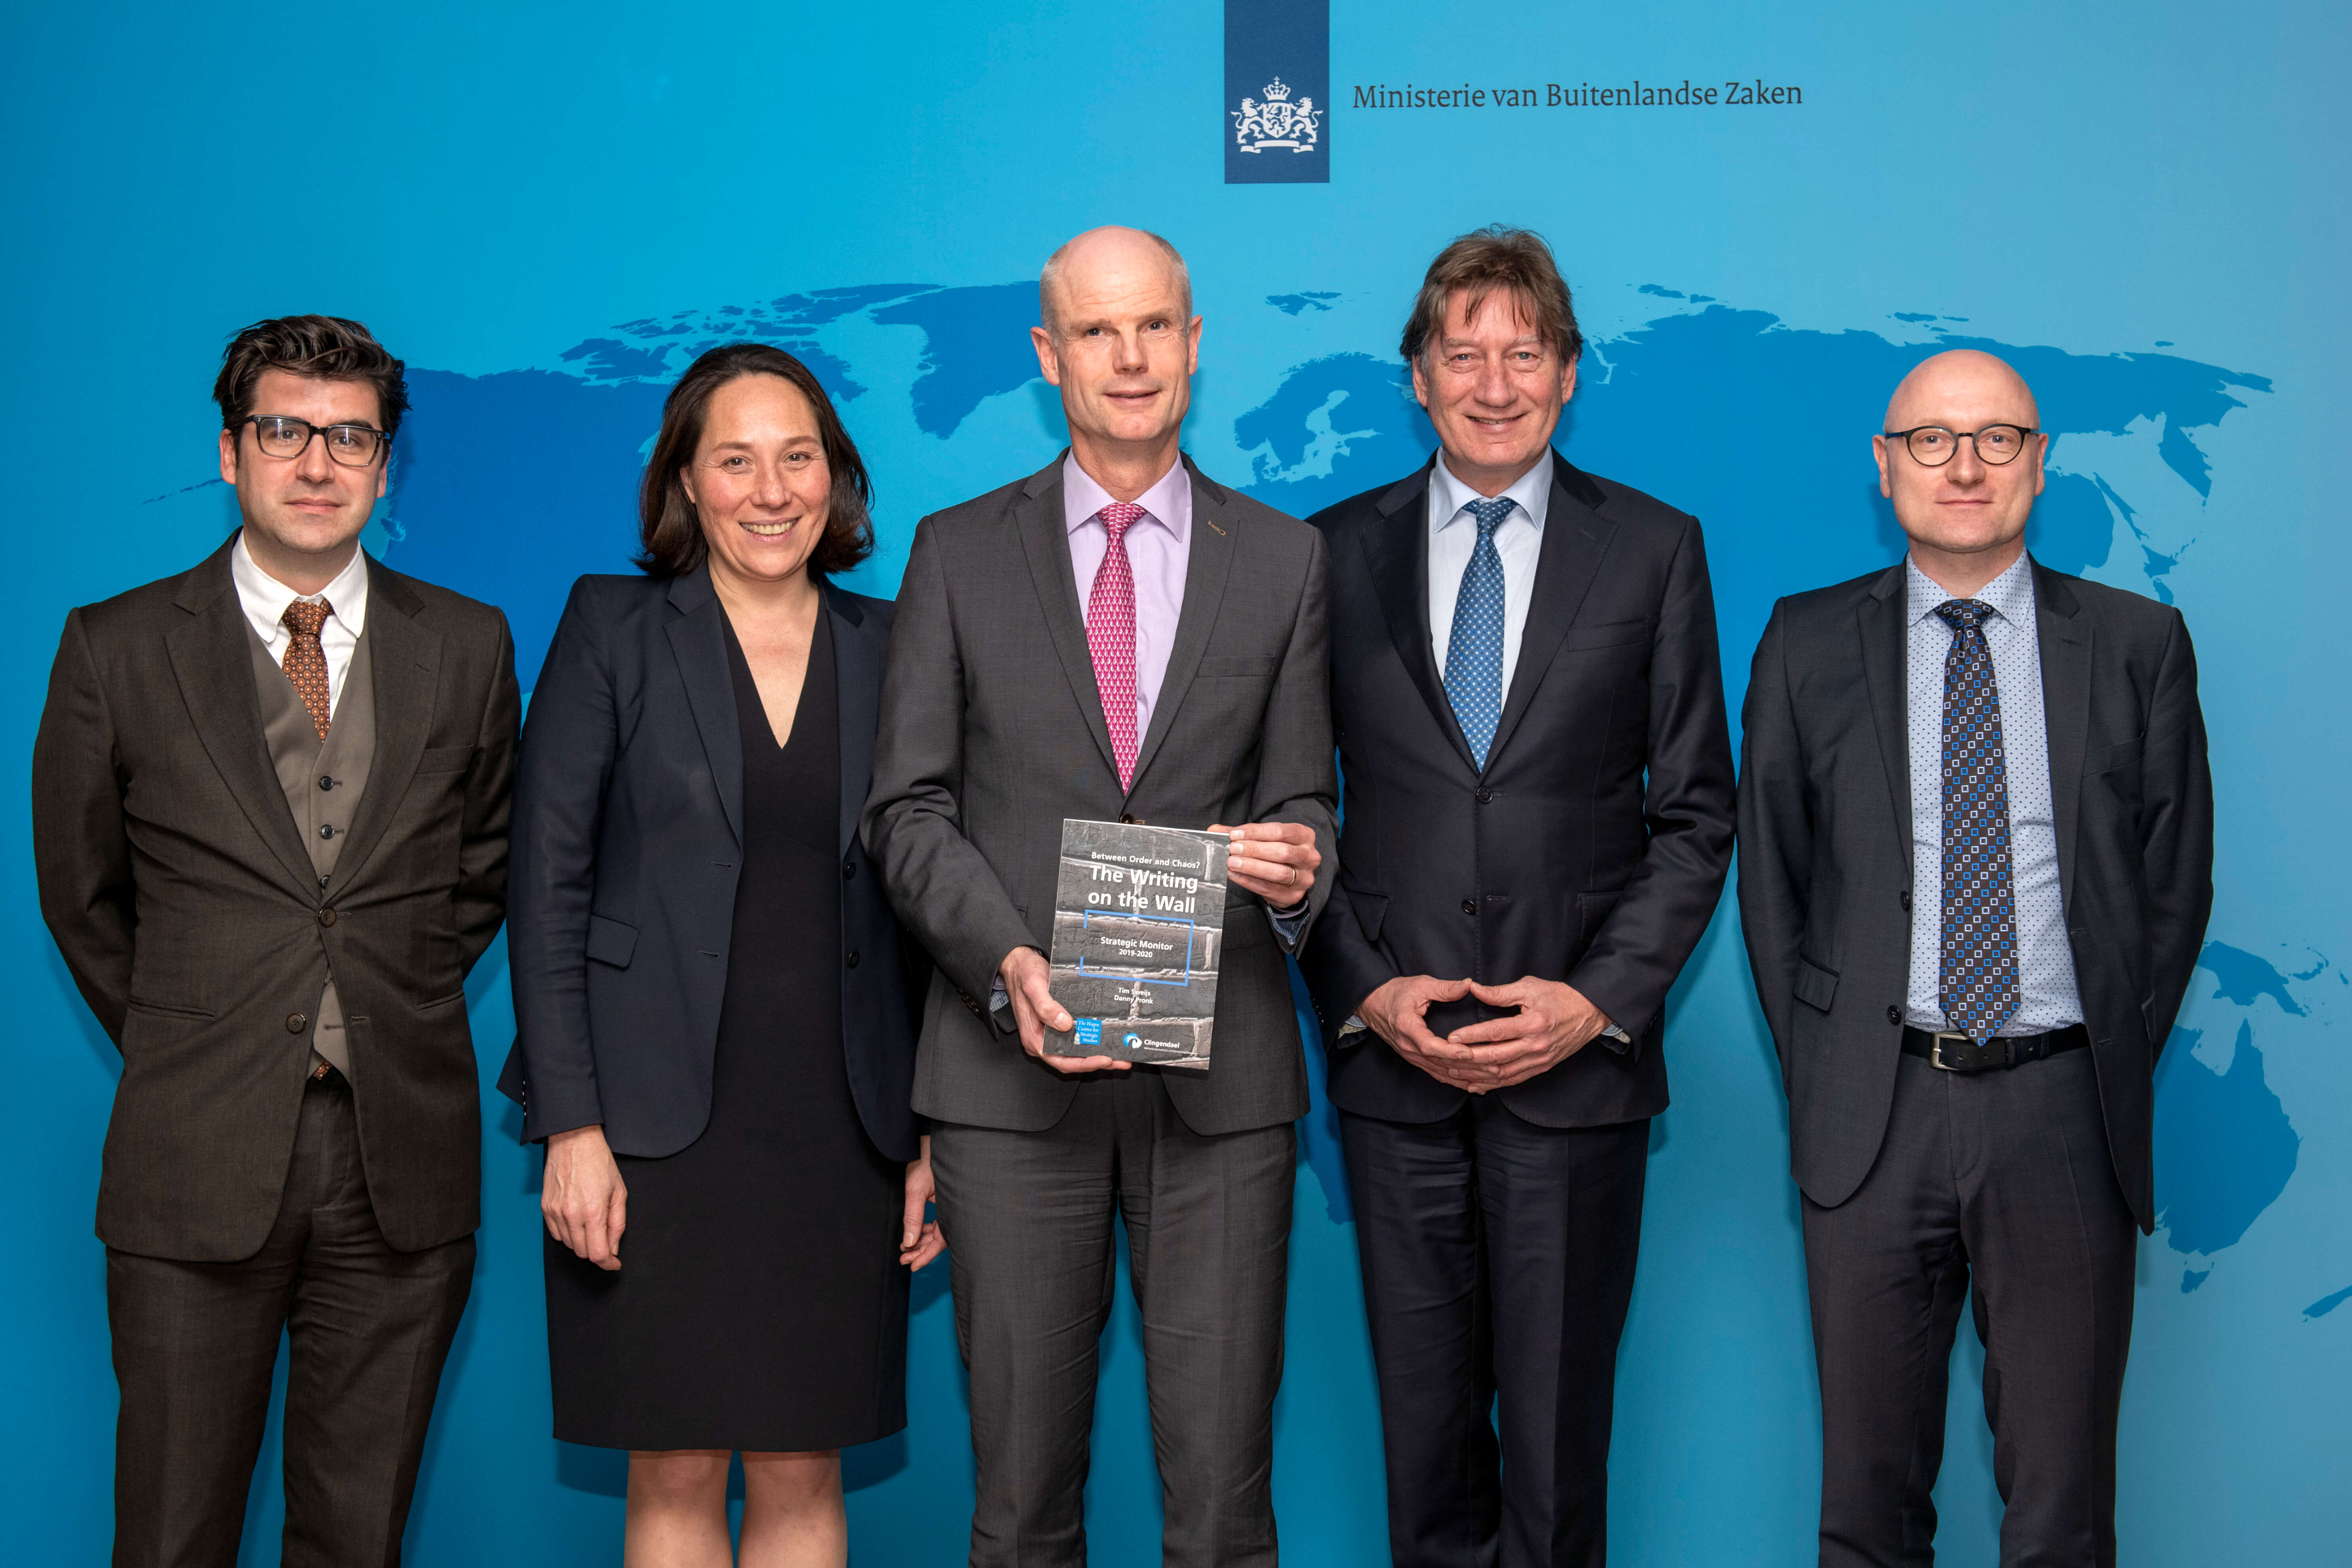 Monika Sie and Danny Pronk present the Strategic Monitor to Minister Blok